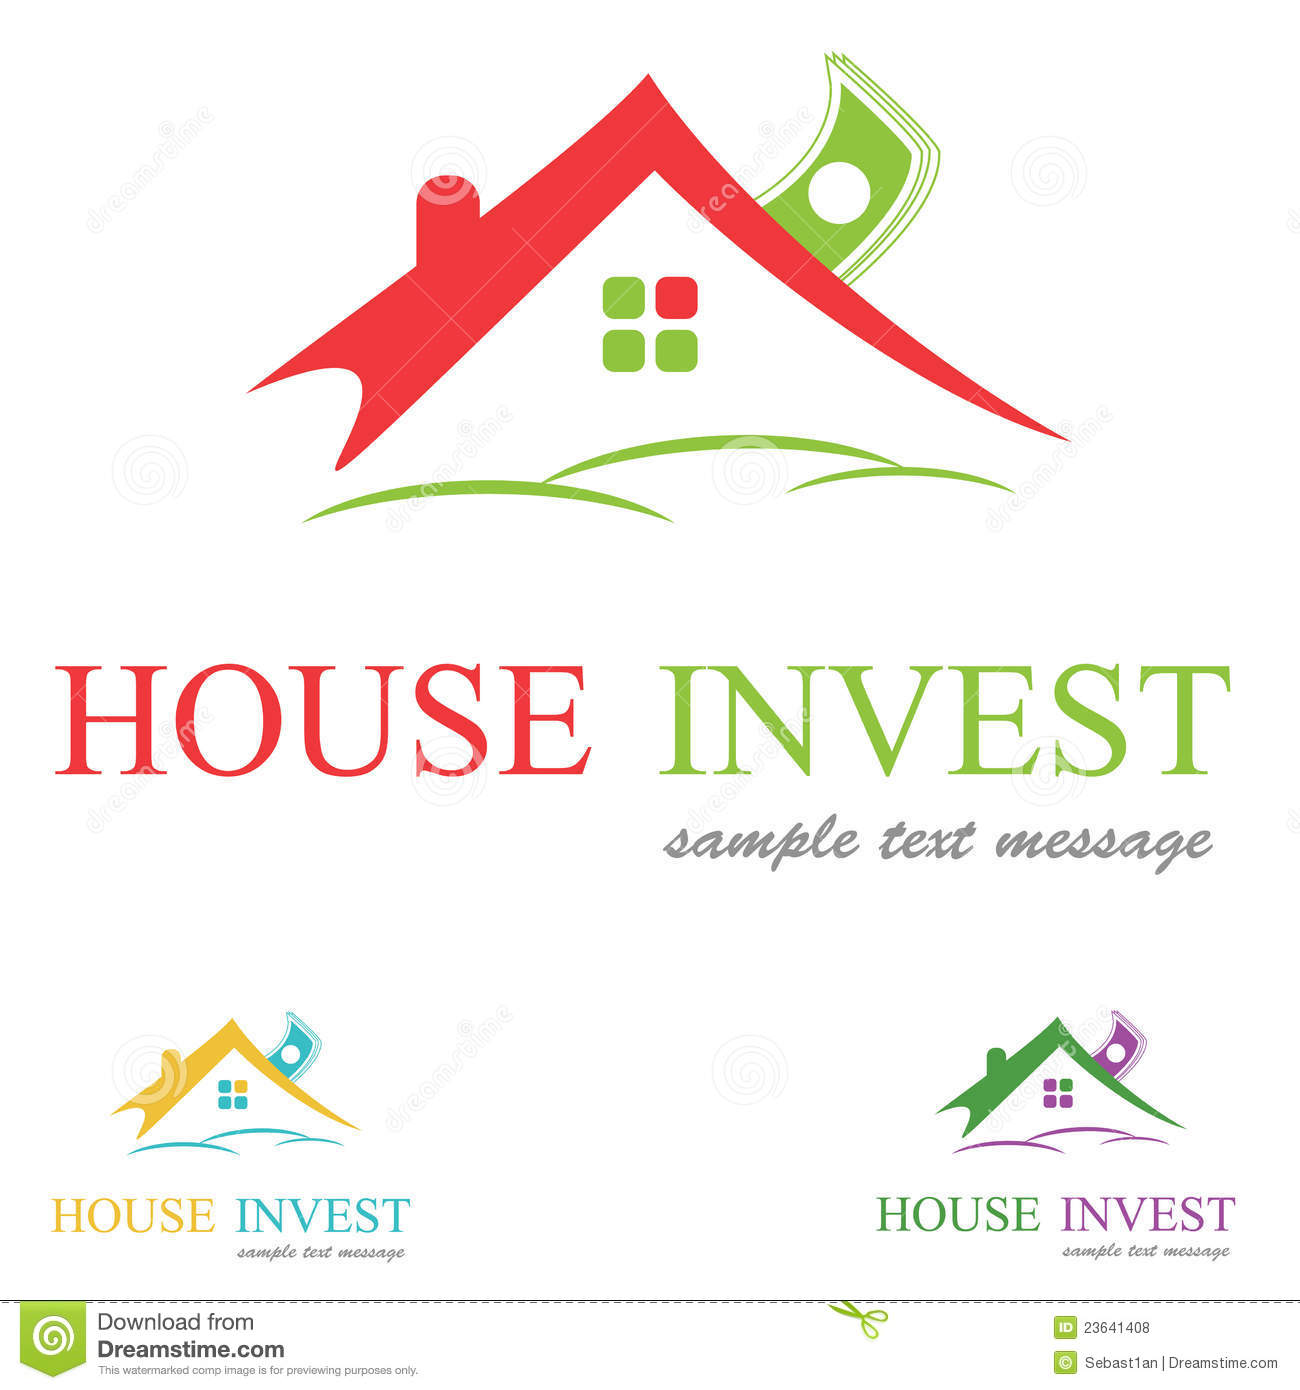 House Logo Royalty Free Stock Photos - Image: 23641408